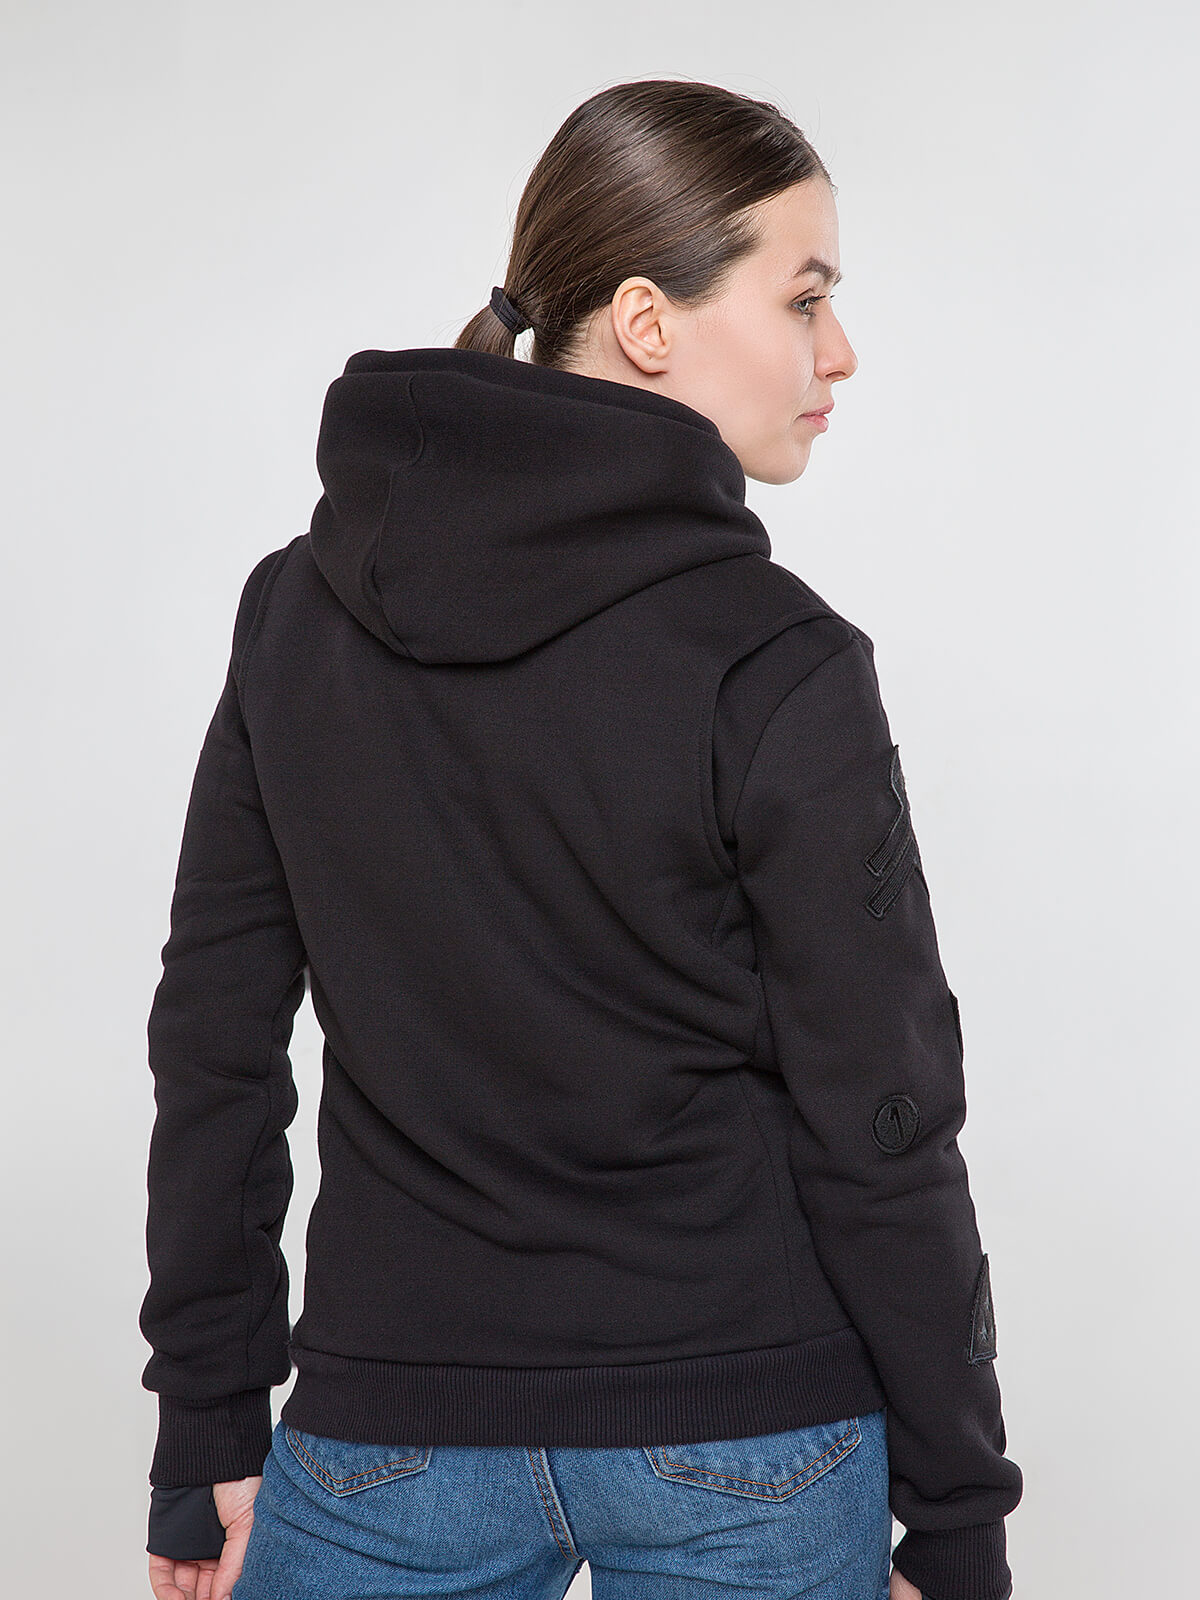 Women's Hoodie Wings. Color black.  Don't worry about the universal size.